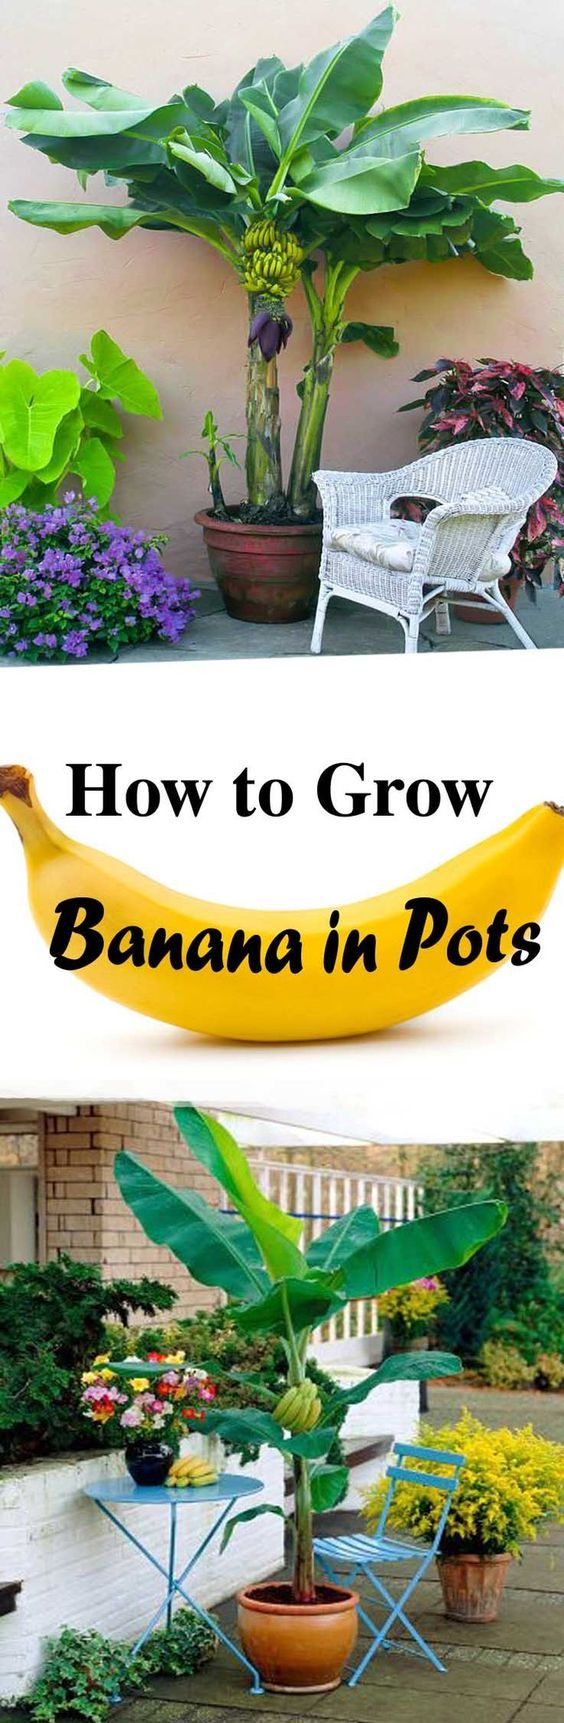 Growing Banana Trees in Pots